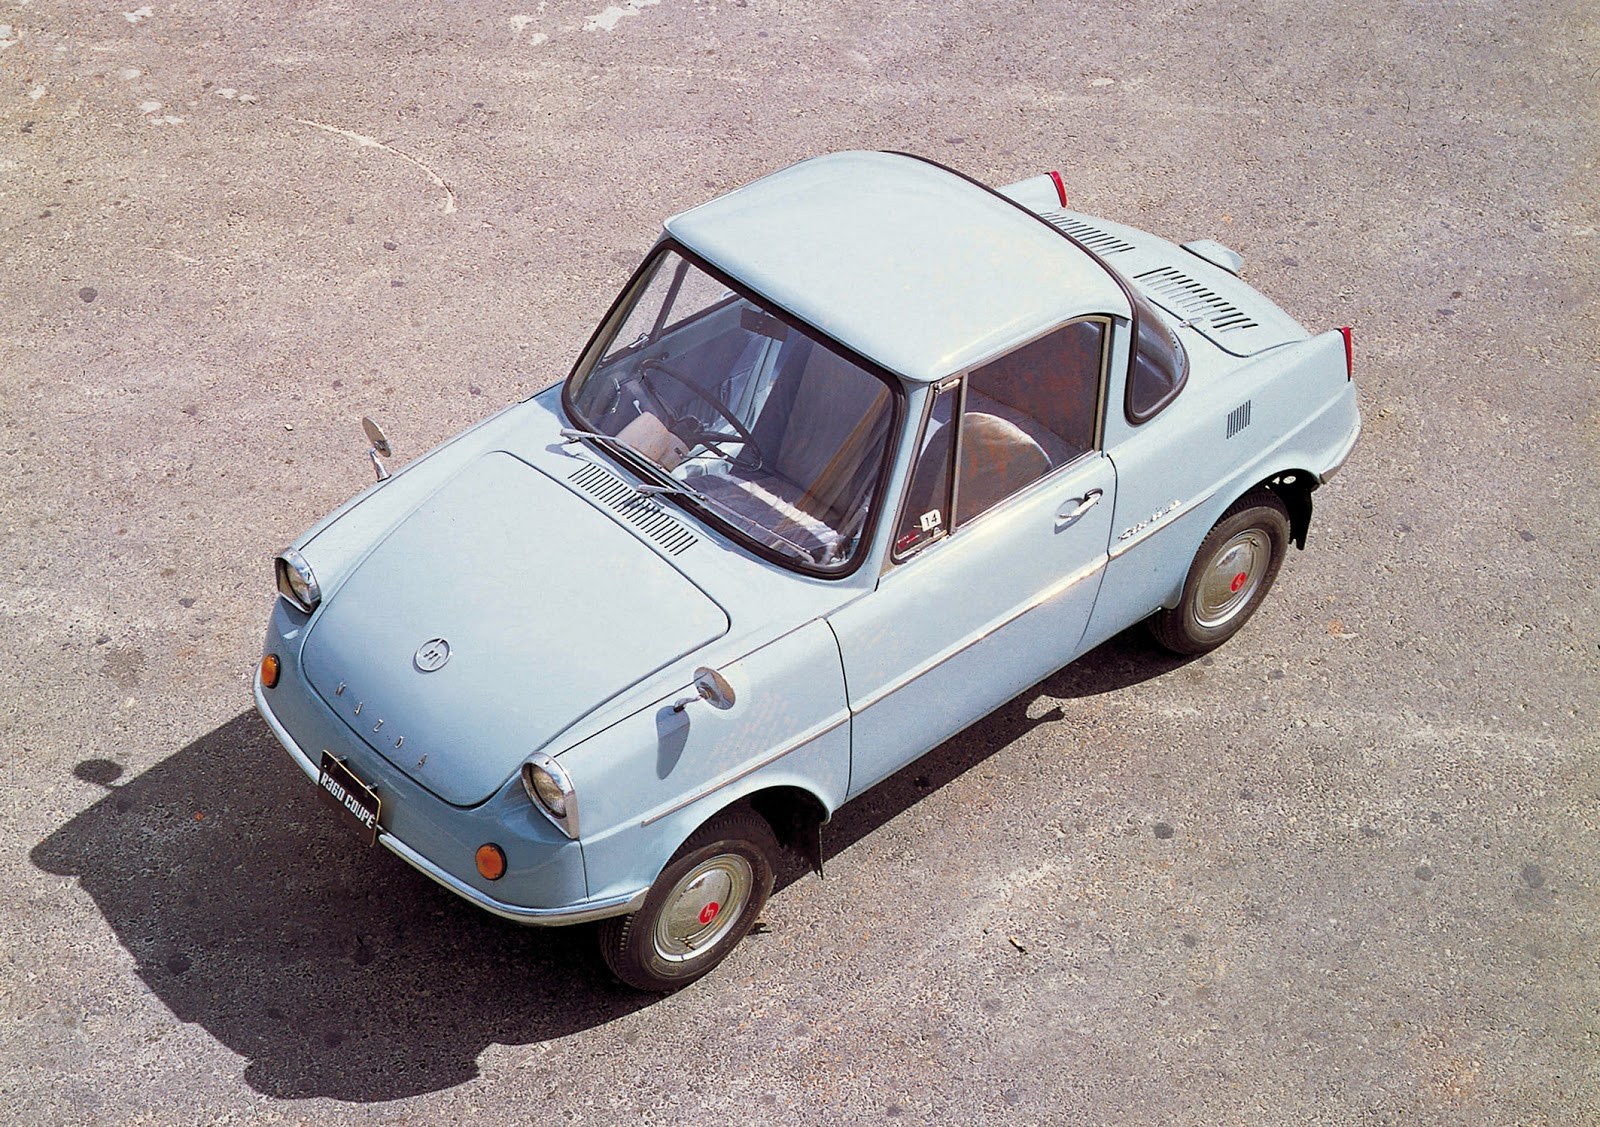 R360 Coupe 1960 hires hires 60 χρόνια εμβληματικών coupe απο τη Mazda